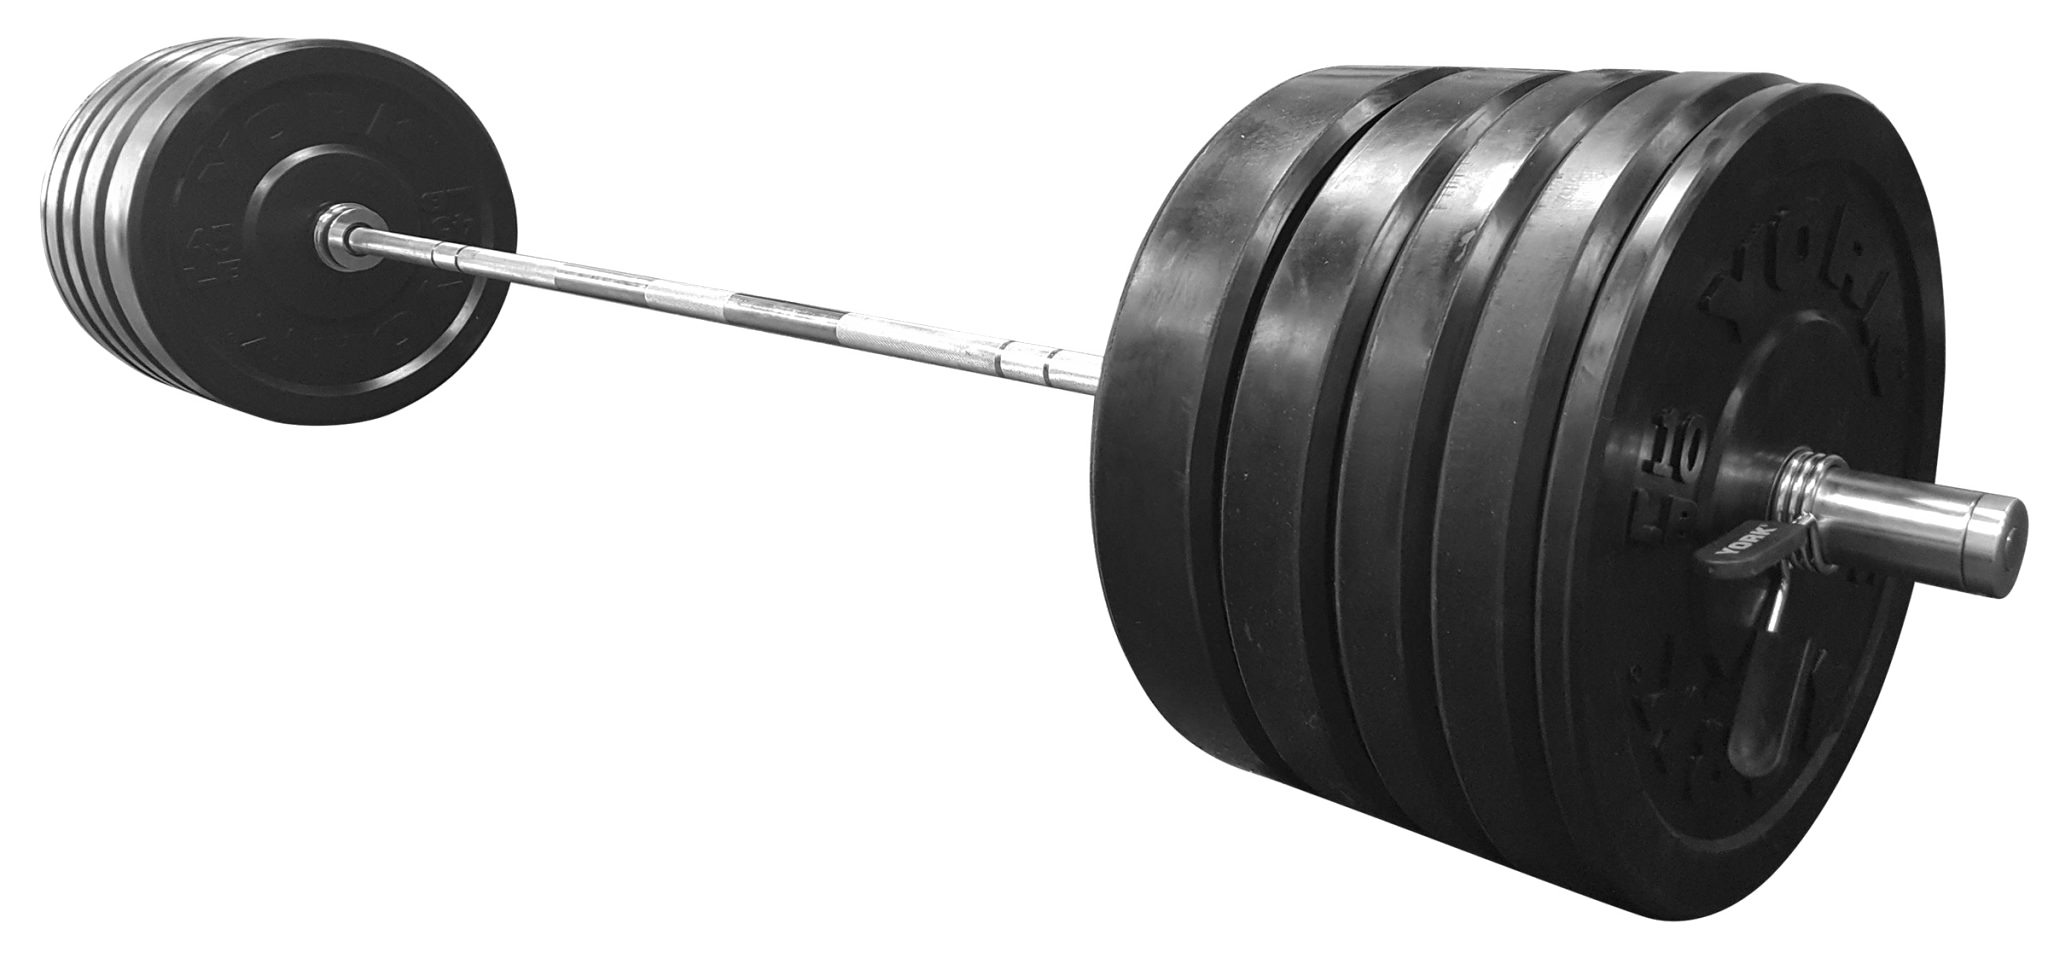 Barbell PNG Transparent Images.